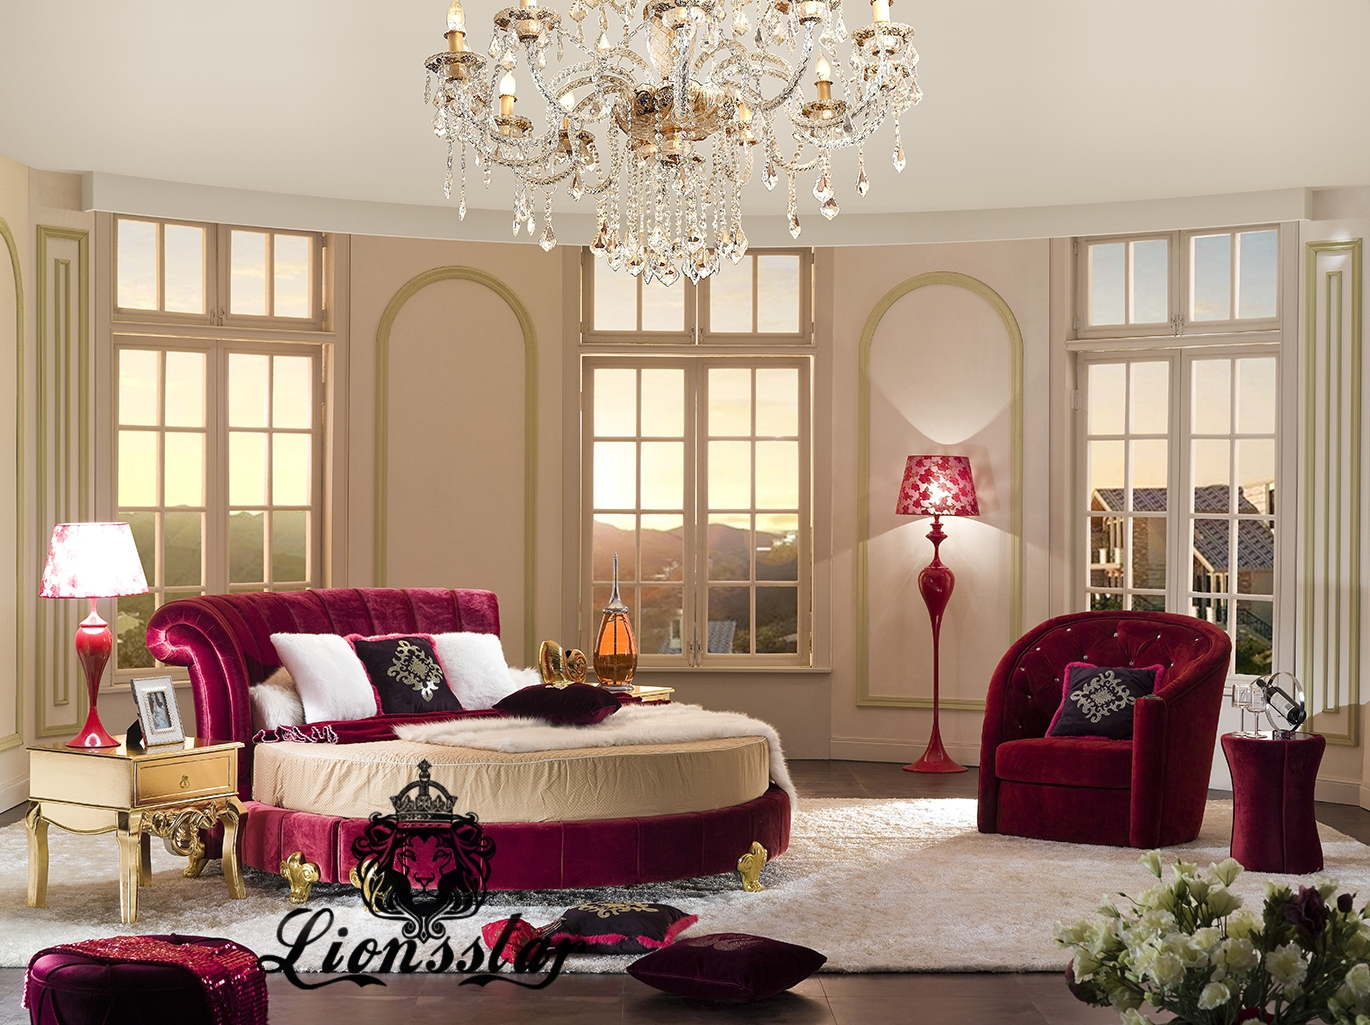 luxus m bel design qualit t lionsstar gmbh. Black Bedroom Furniture Sets. Home Design Ideas